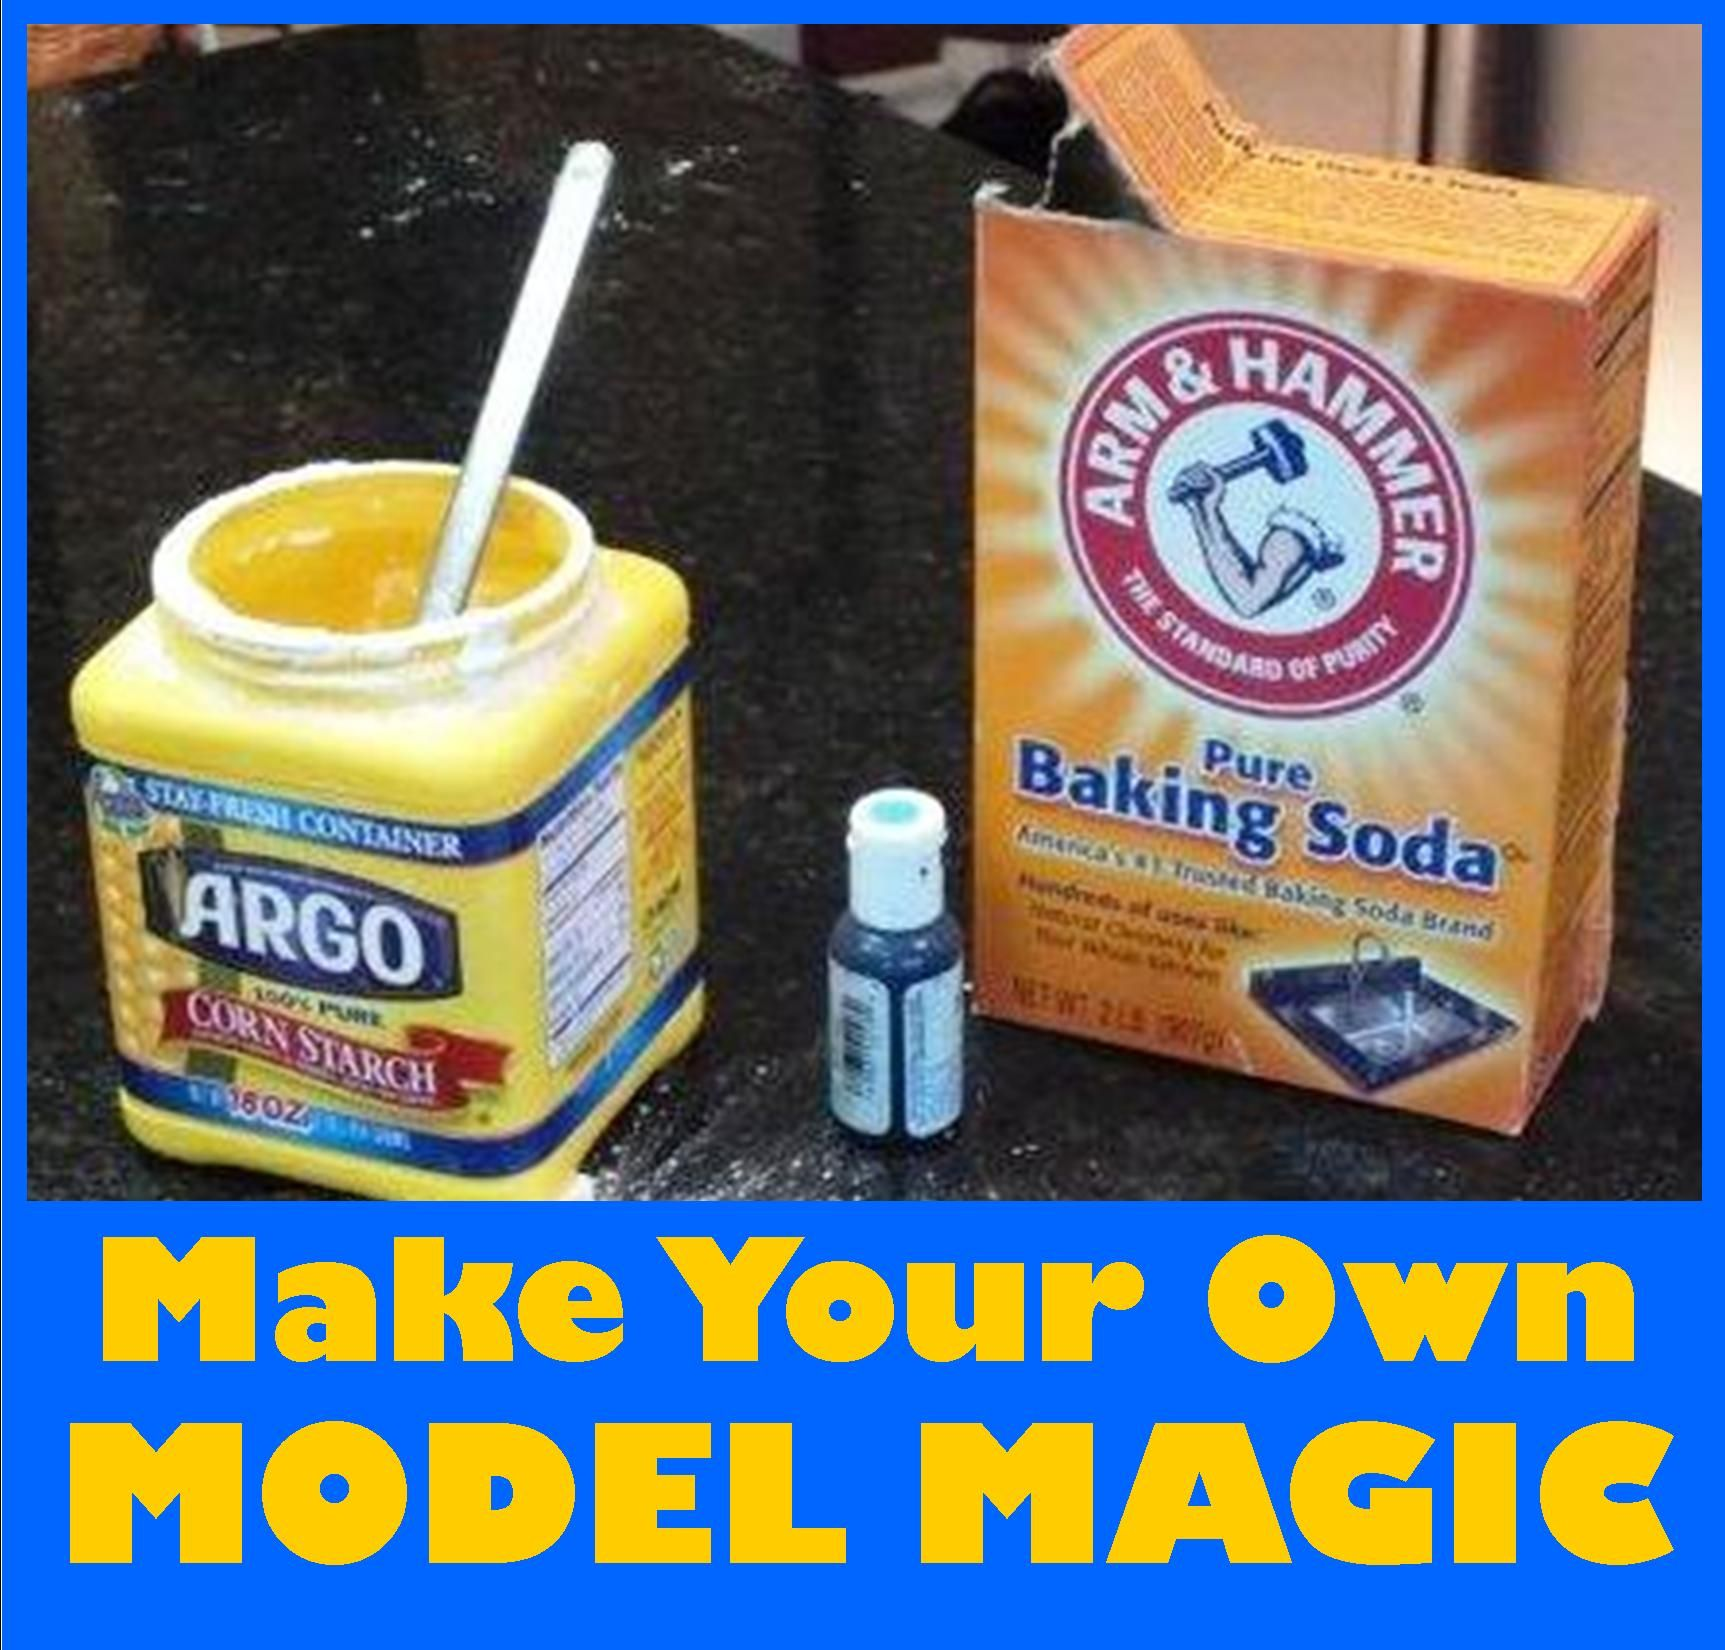 Make Model Magic at home with just a few simple ingredients